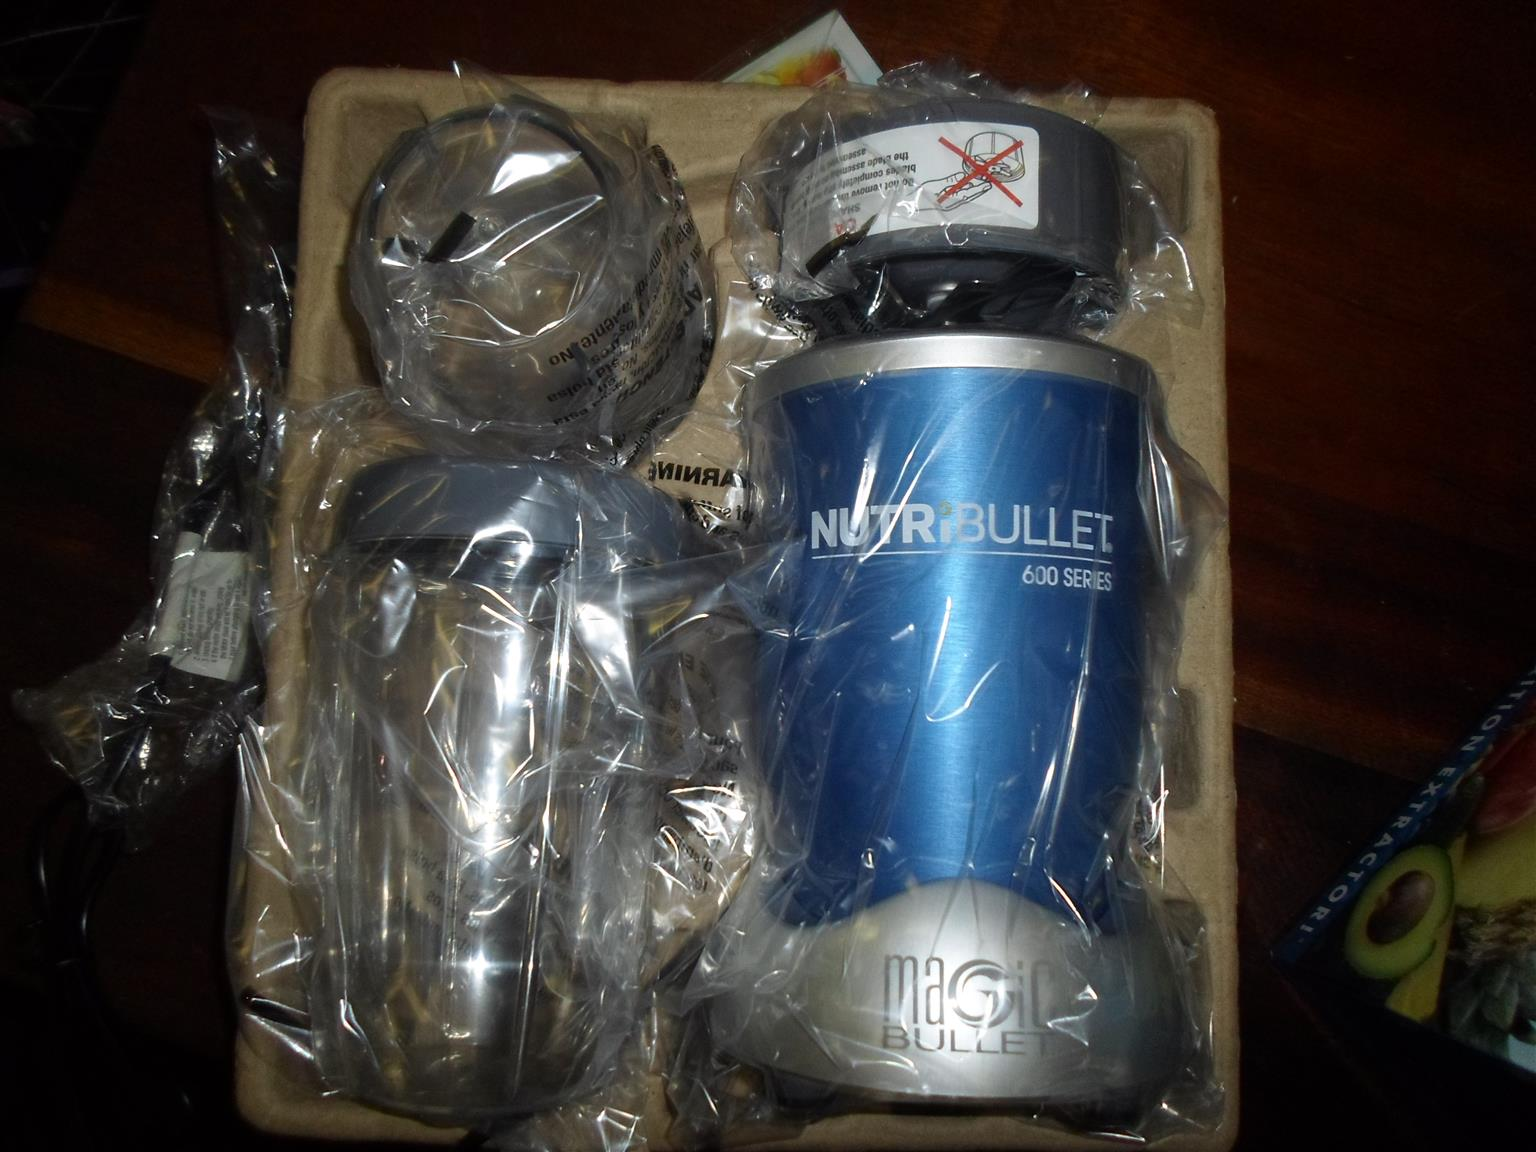 Nutribullet 600 Series Juice Extractor